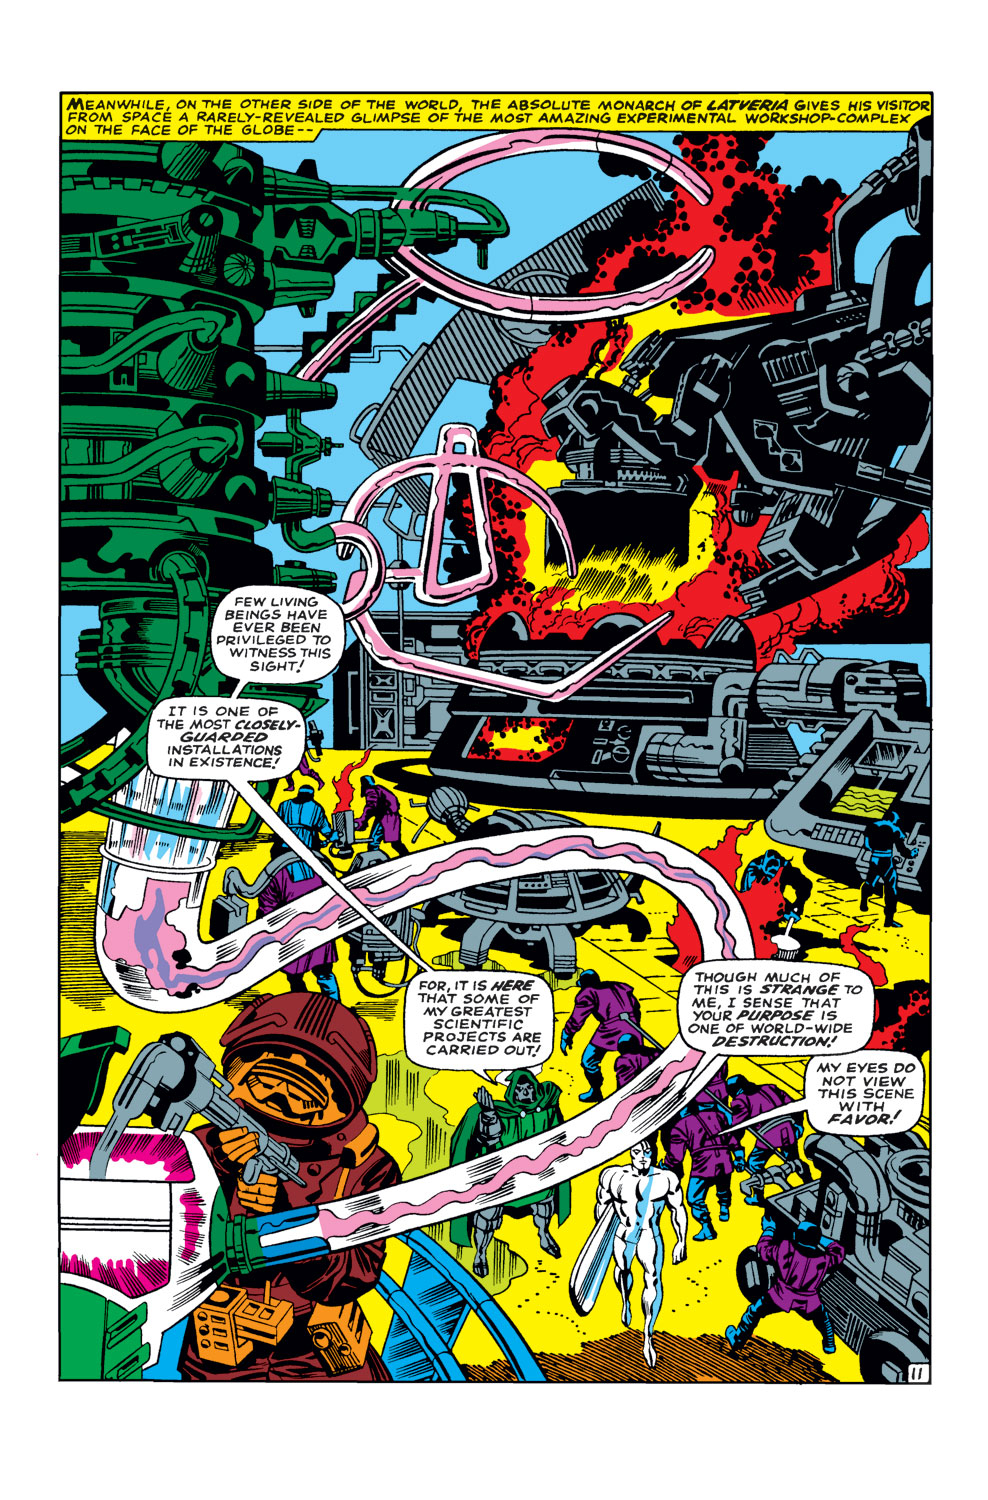 """In 'Fantastic Four' (1968) #57, Doctor Doom takes Silver Surfer to his workshop-complex and shows him """"the scientific projects"""" he is working on."""